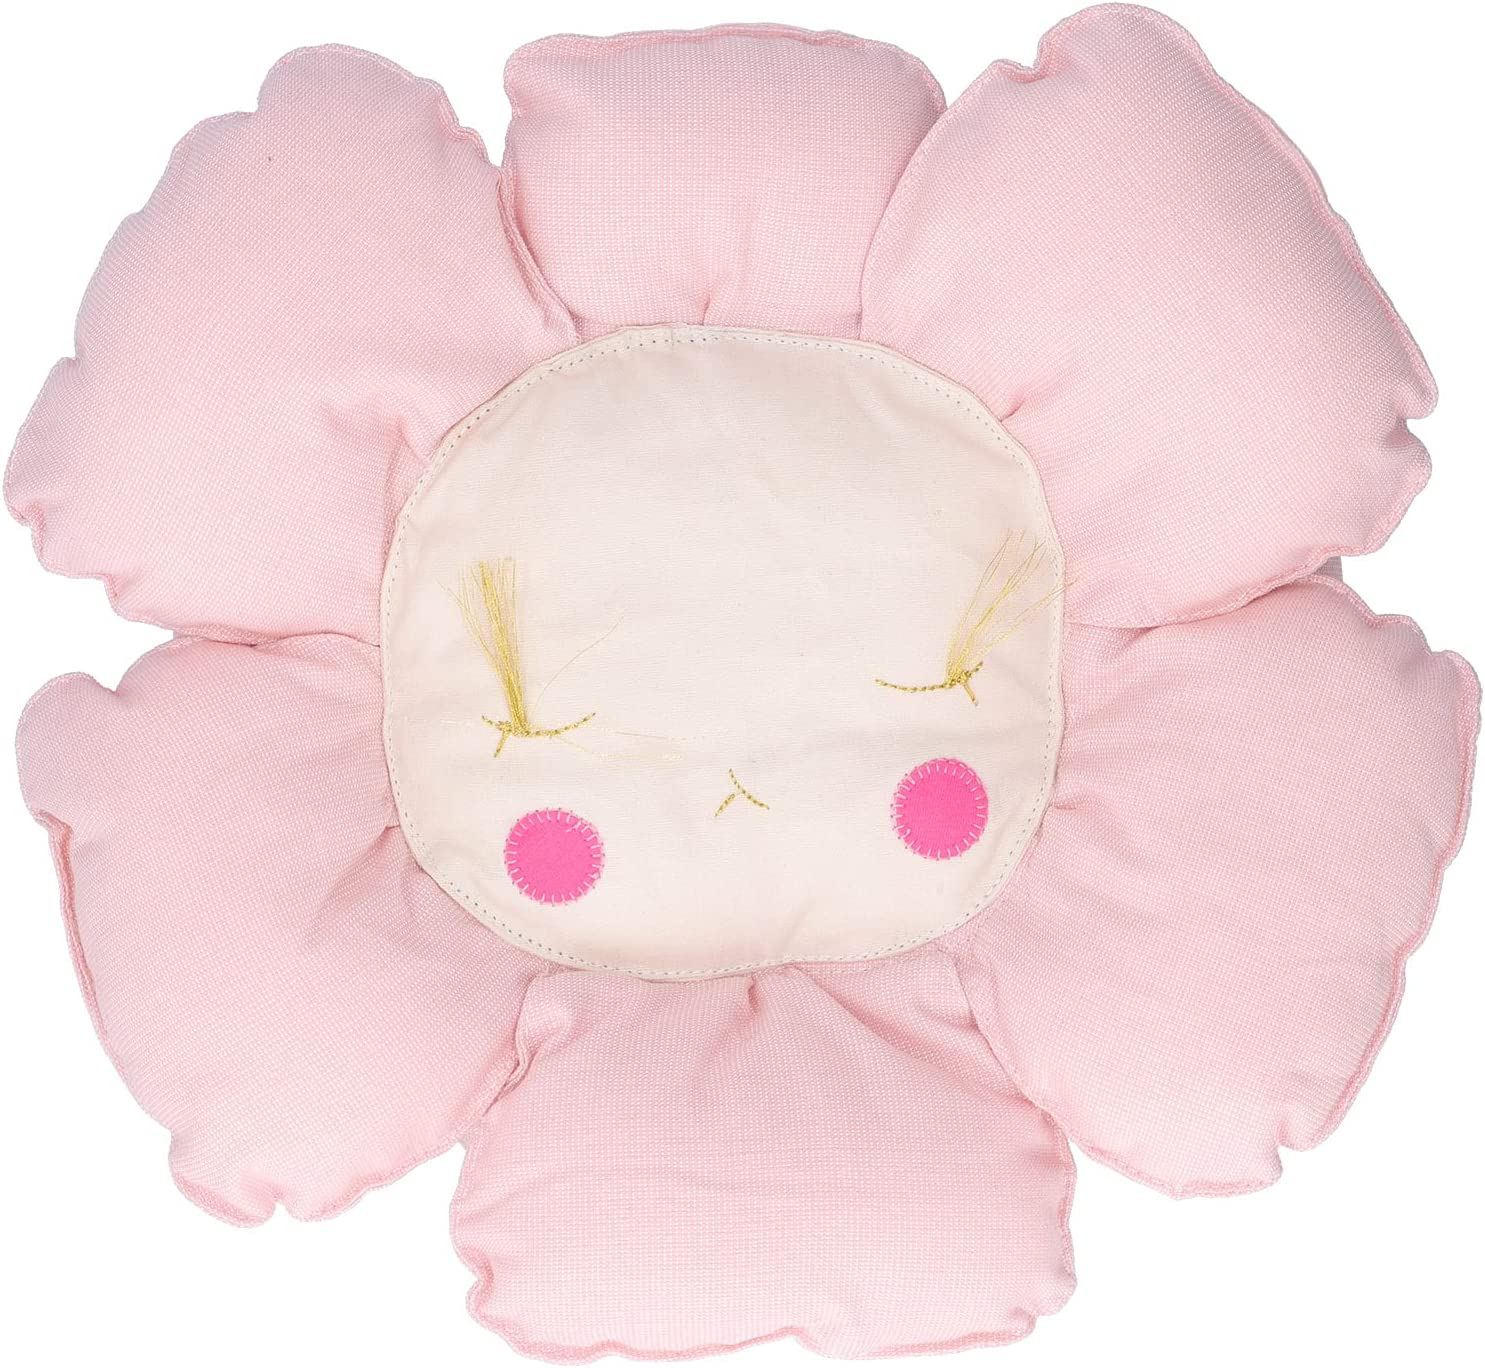 Direct stock discount Zerodis Flower Shaped Wall Special Campaign Decor Decoration Flo Pure Cotton